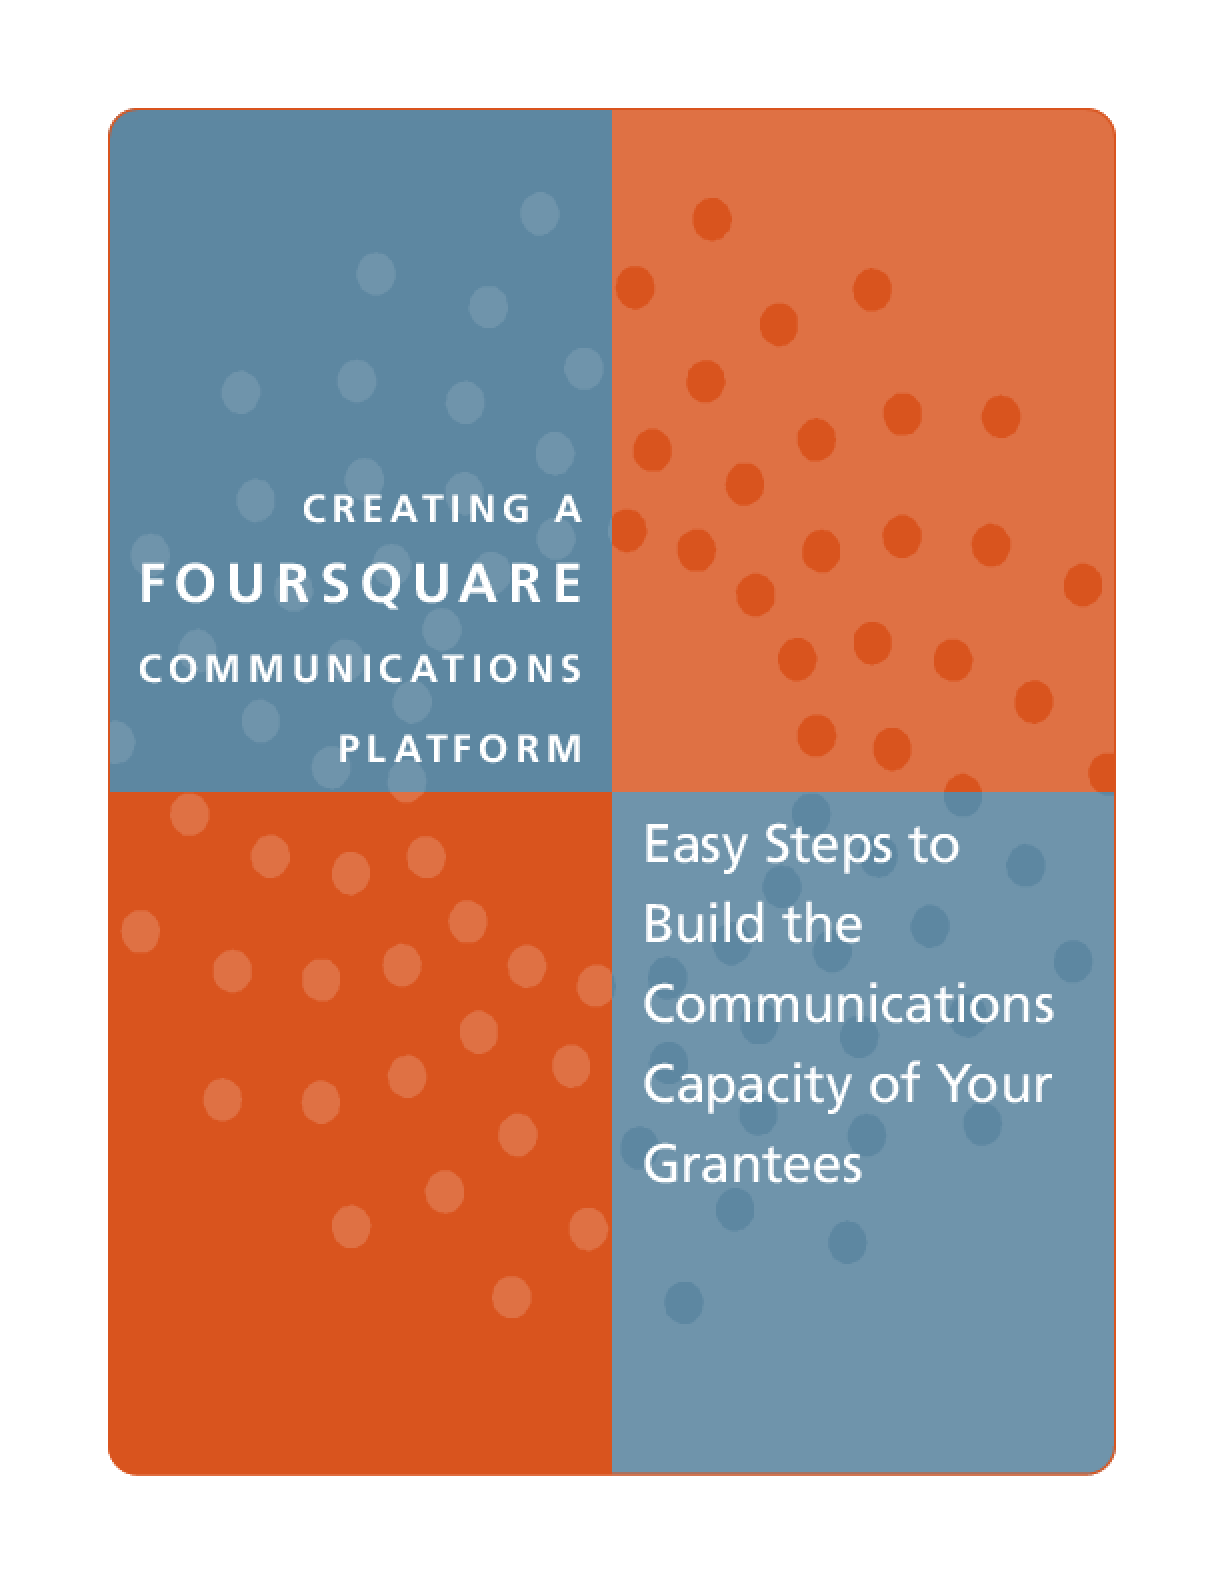 Creating a Foursquare Communications Platform: Easy Steps to Build the Communications Capacity of Your Grantees